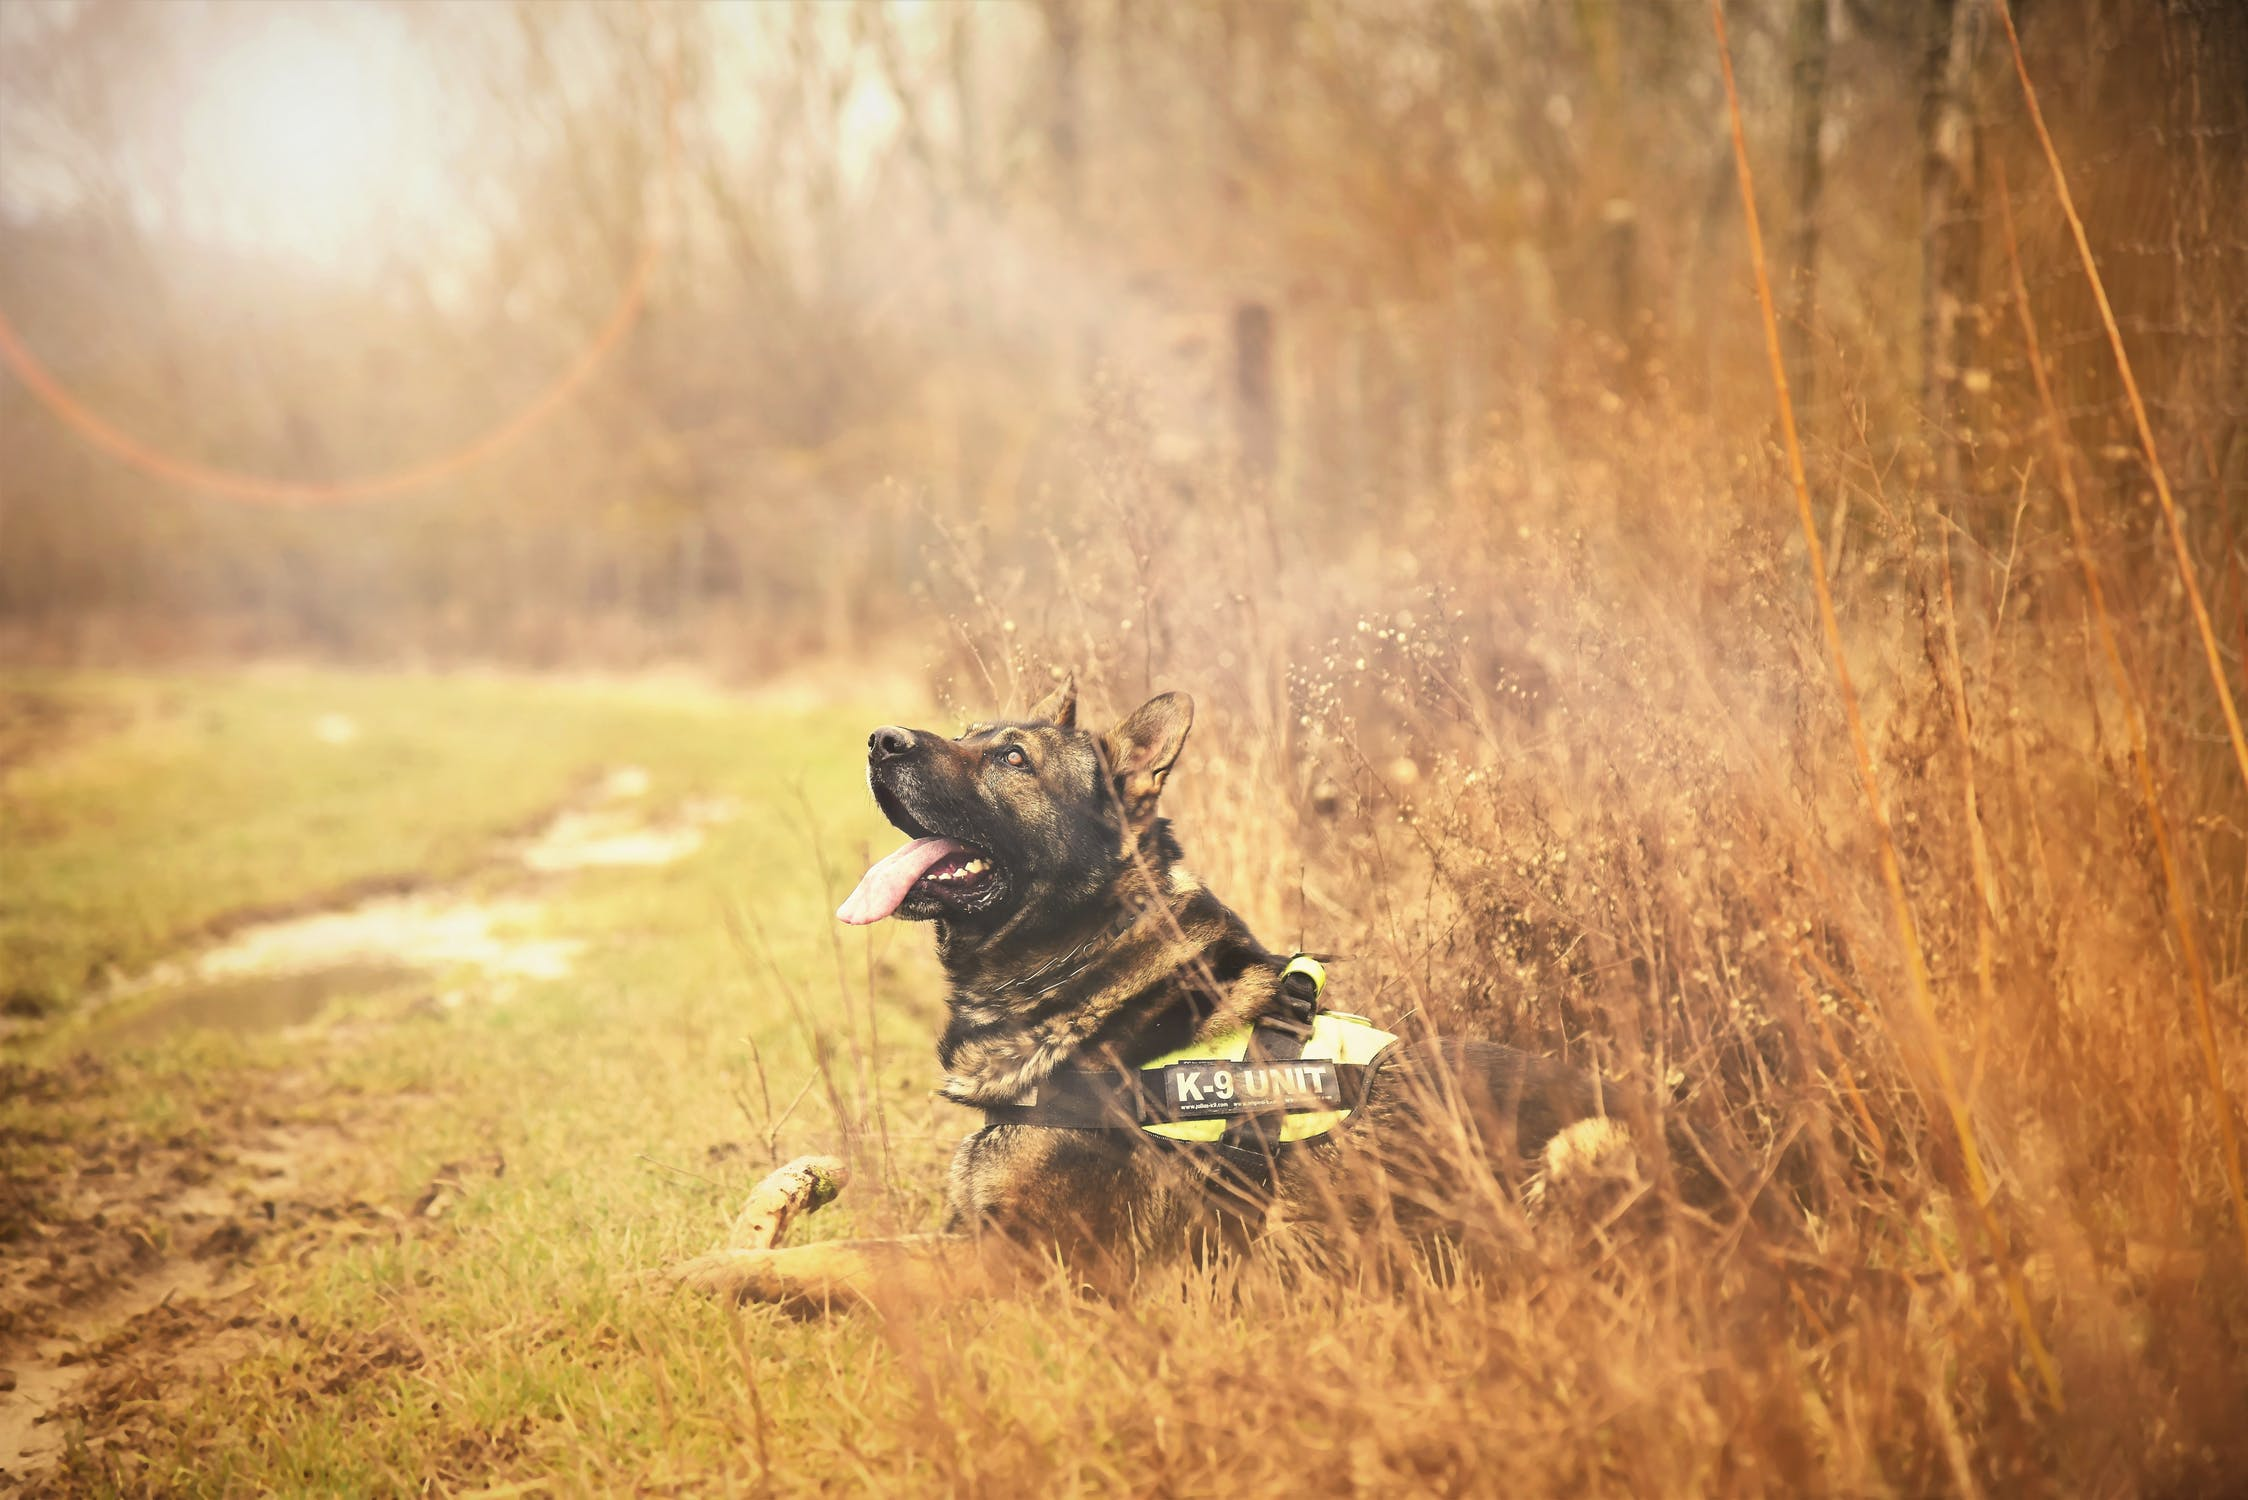 german shepherd in tall grass wearing vest